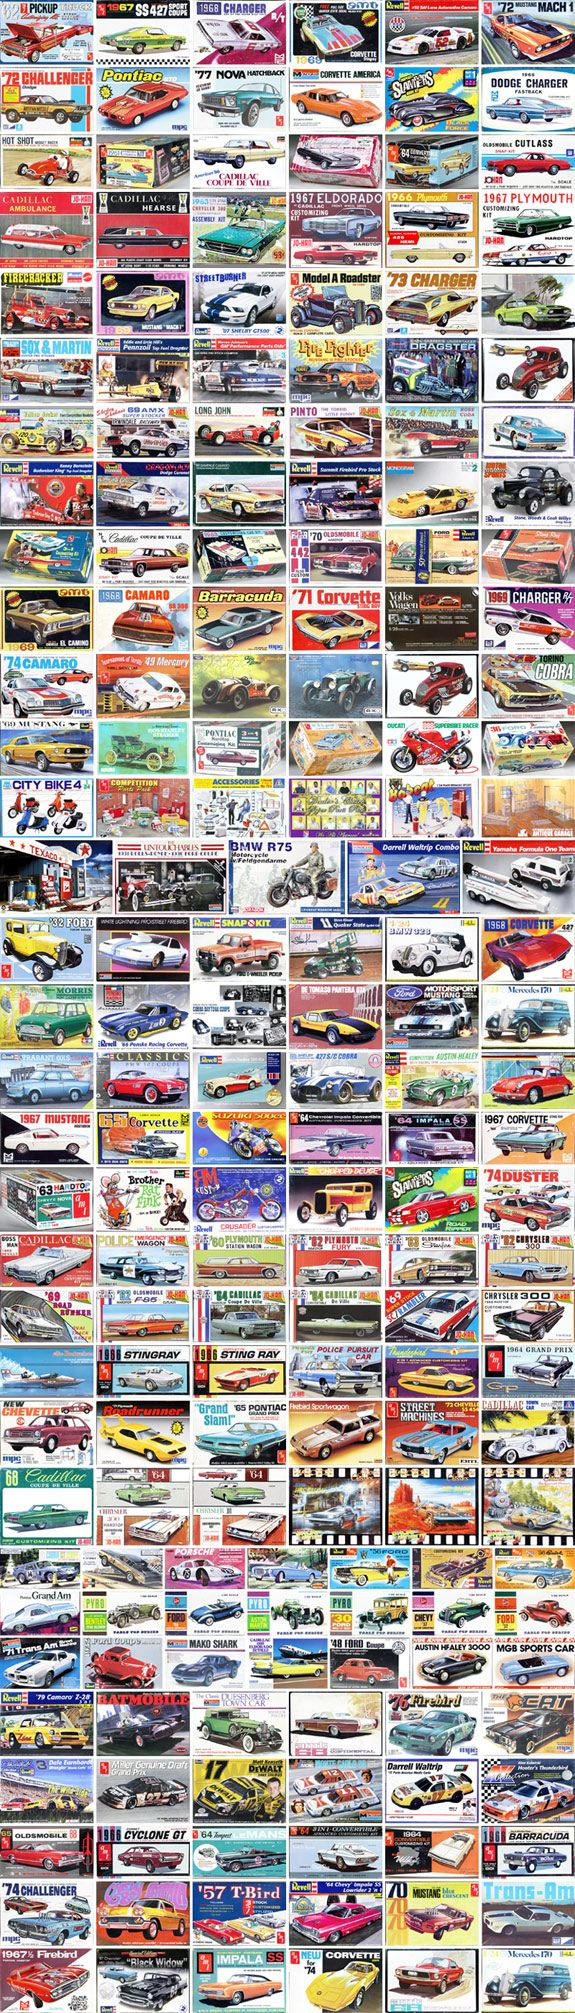 model car kits spotlighthobbies hobbies                                                                                                                                                                                 More